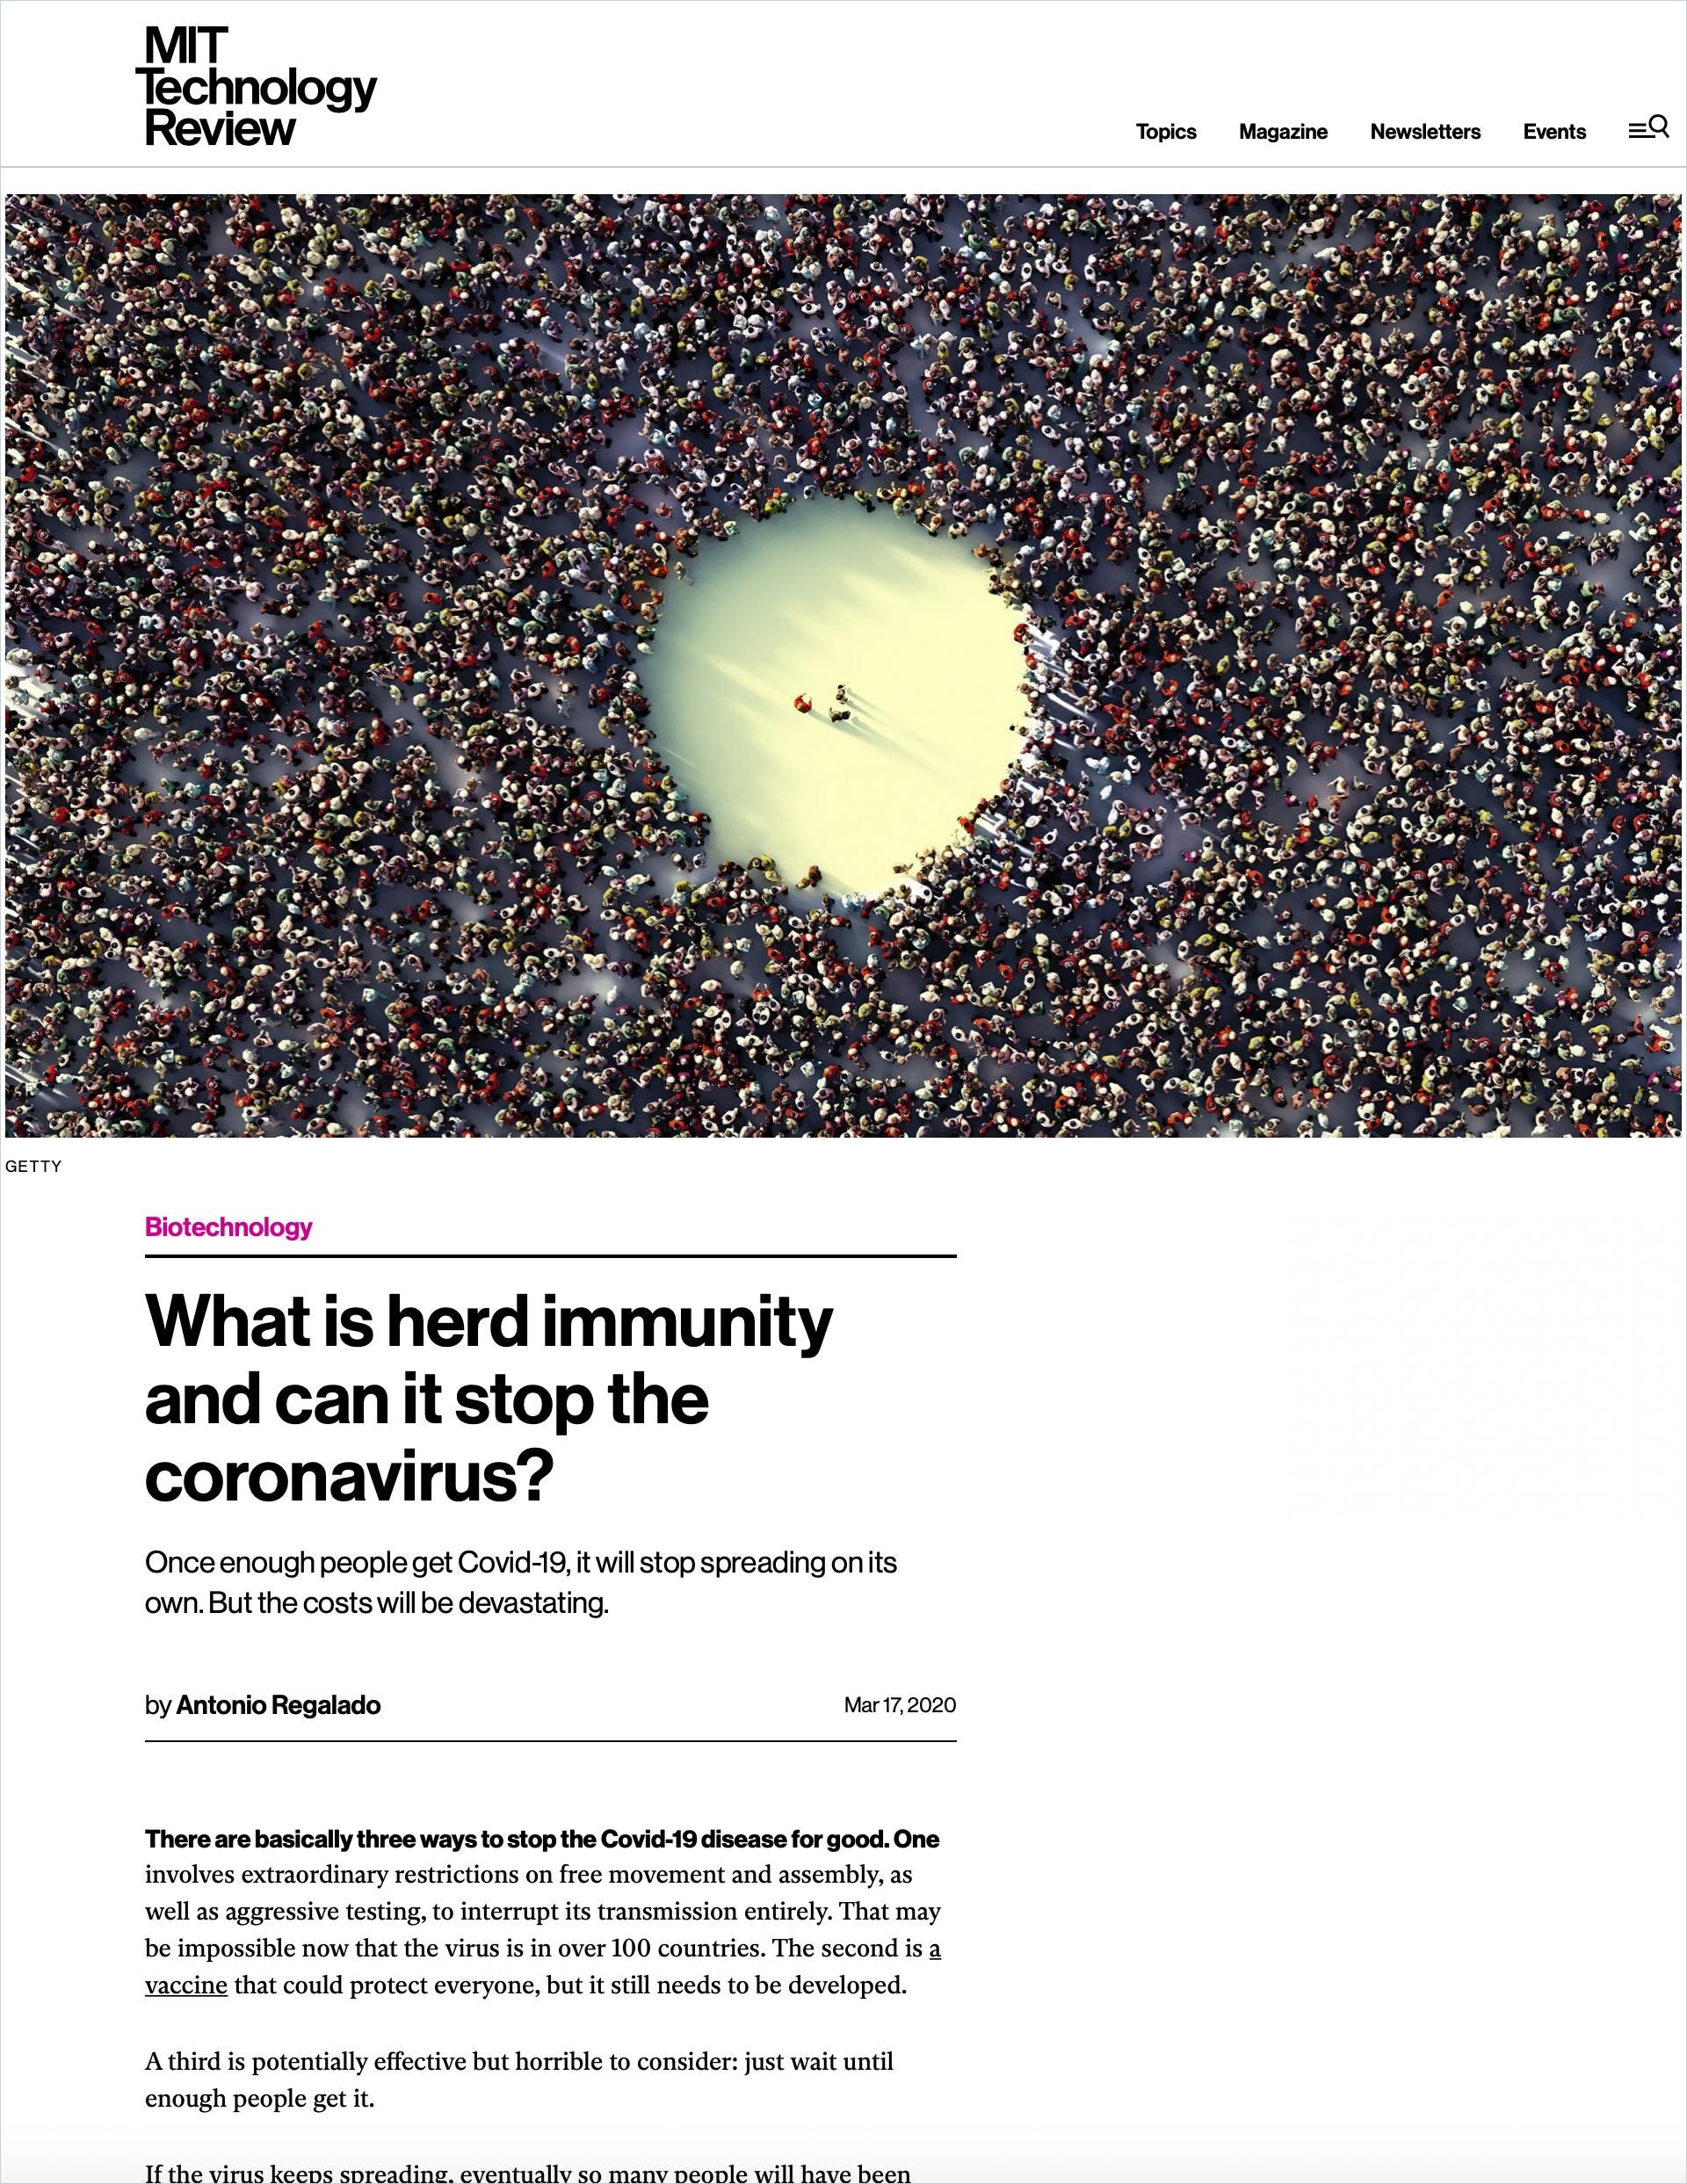 Image of: What Is Herd Immunity and Can It Stop the Coronavirus?